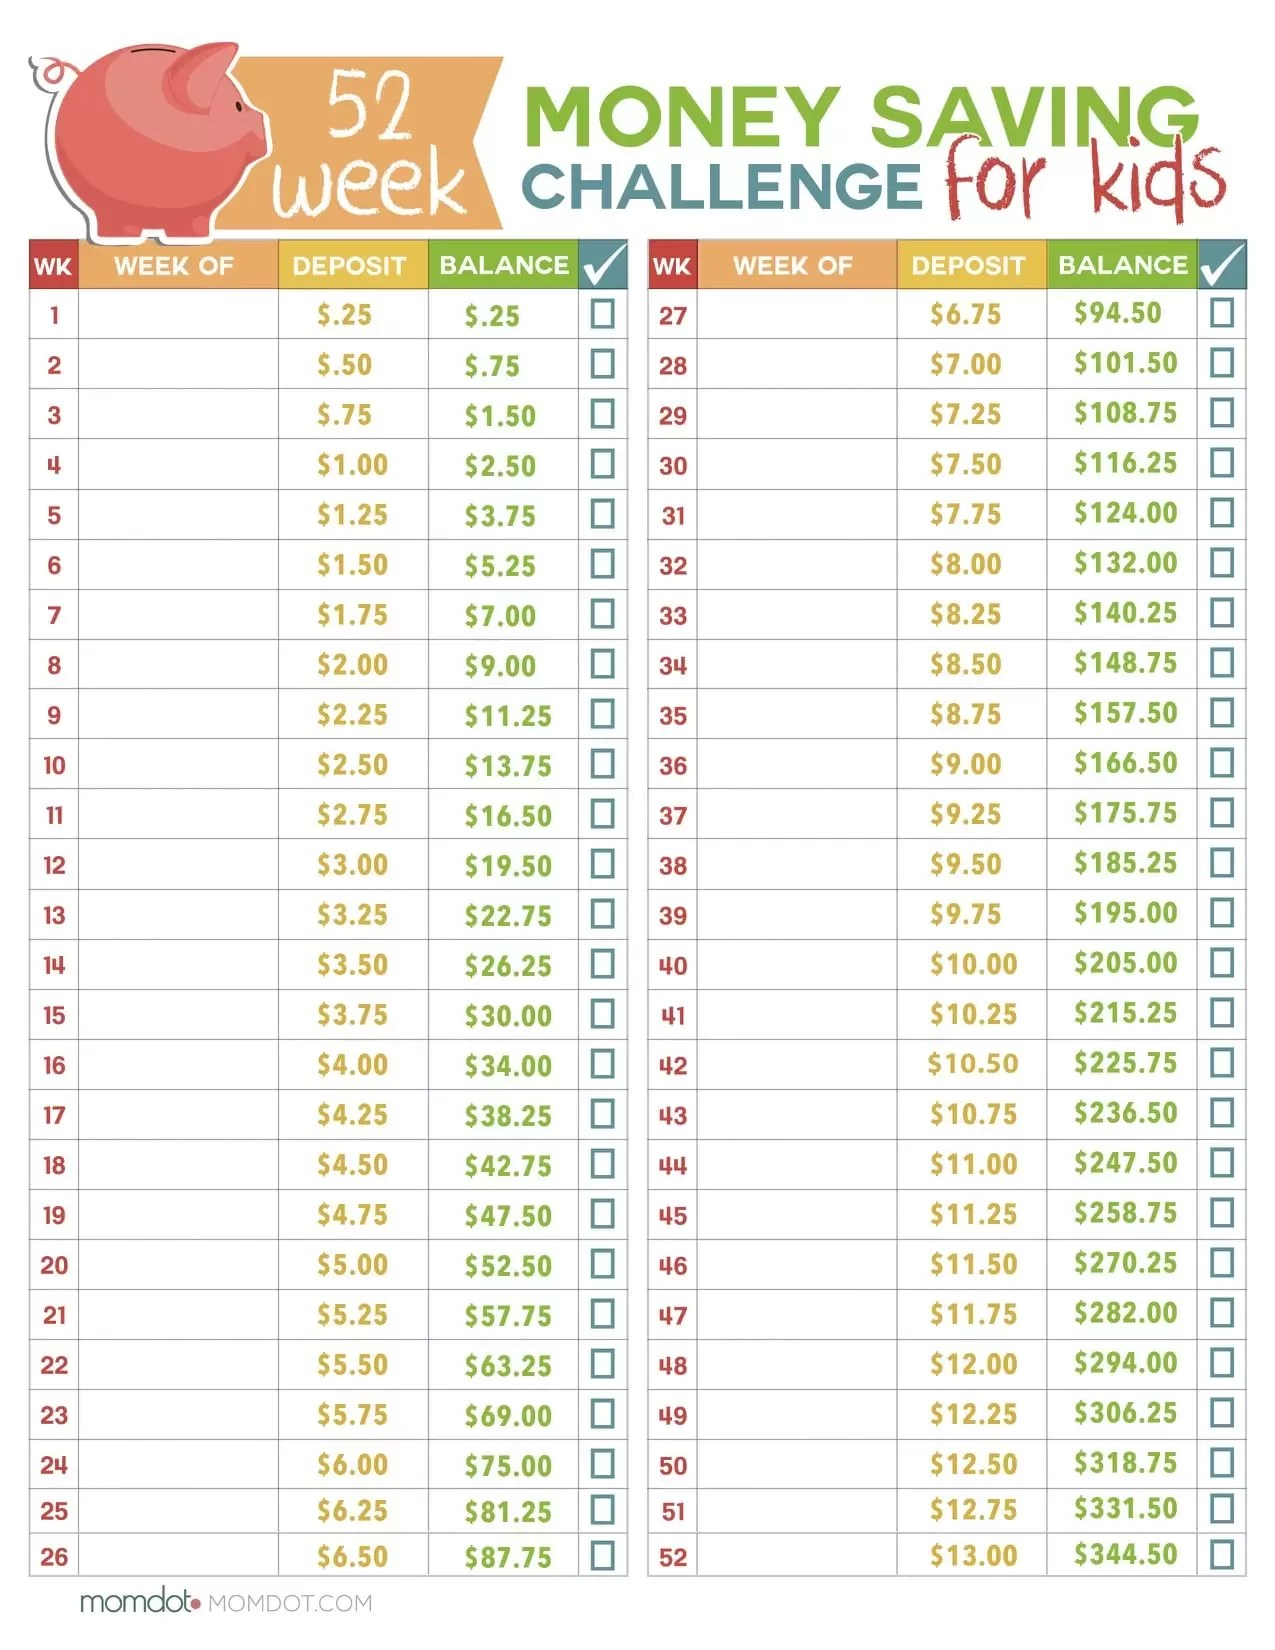 52 Week Money Challenge For Kids